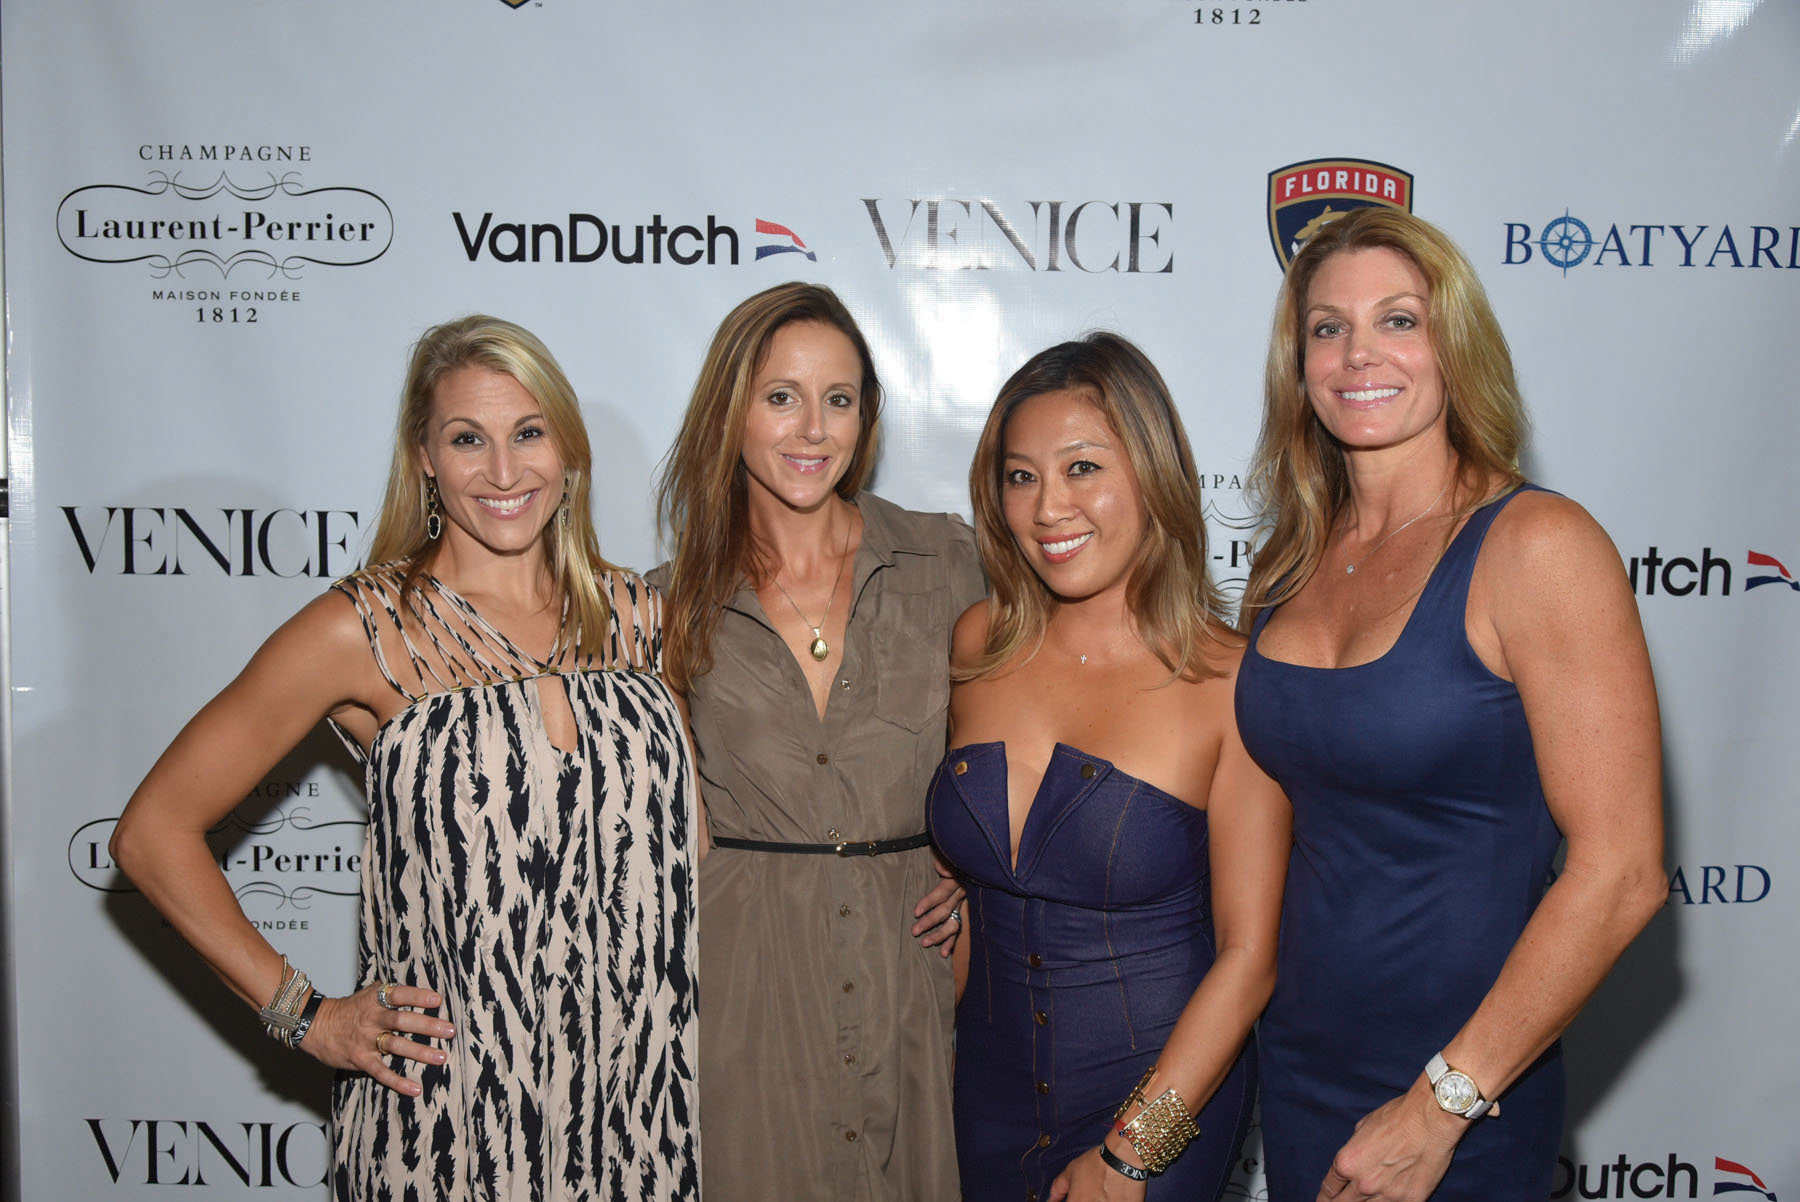 lisa-anderson-nicole-austin-jennifer-leong-jenny-meathelauren-and-brady-cobb-City-Cool-Boat-Yard-Fort-Lauderdale-Venice-Magazine